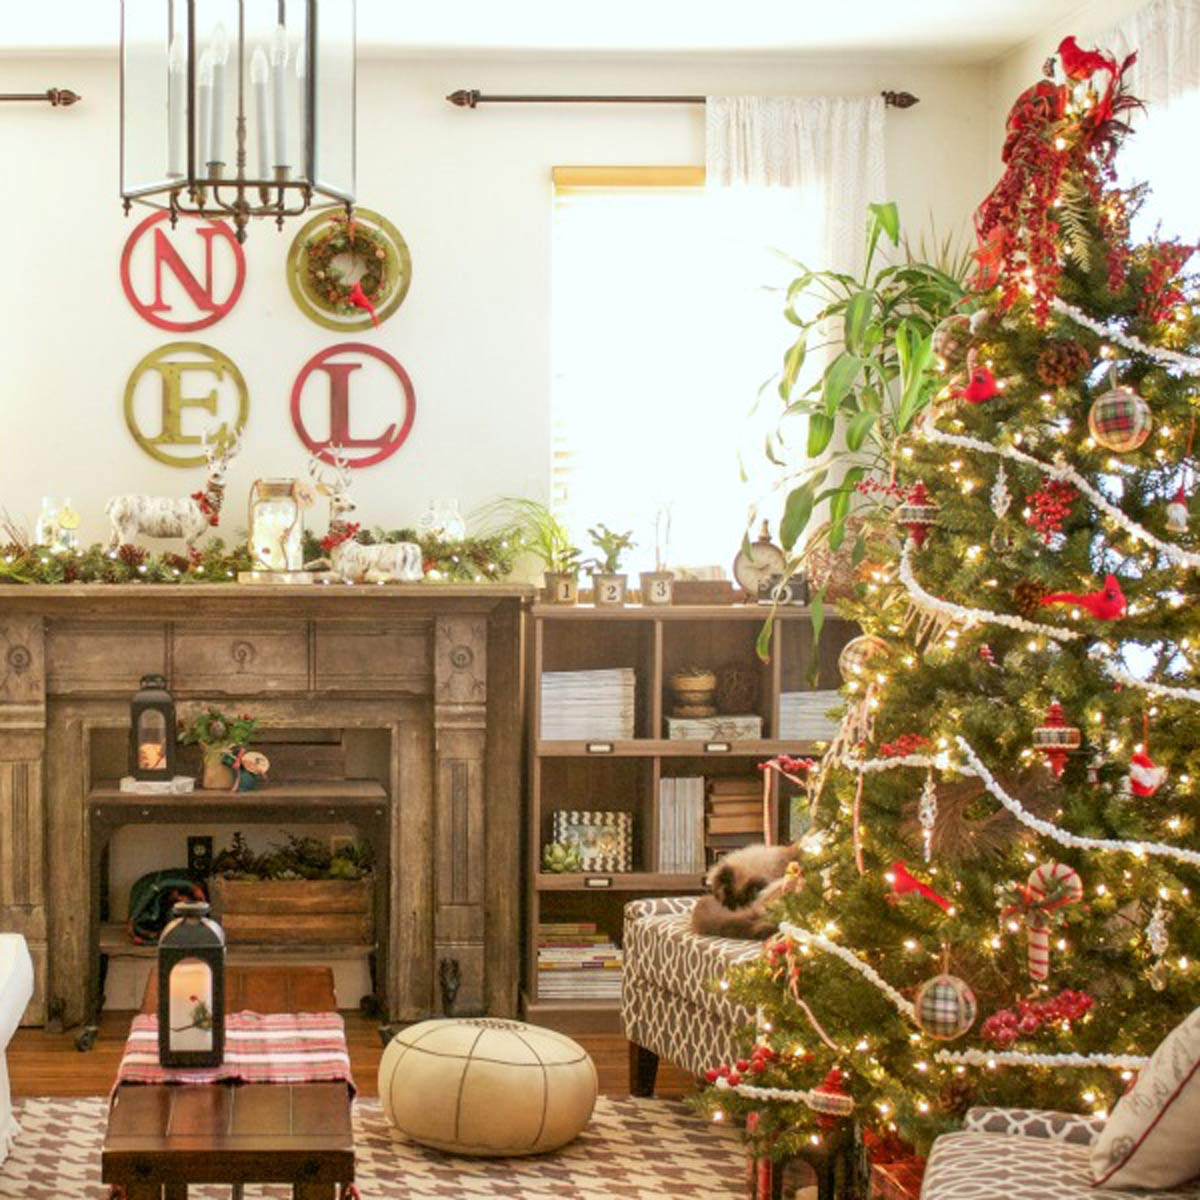 Christmas Decoration Ideas for Home